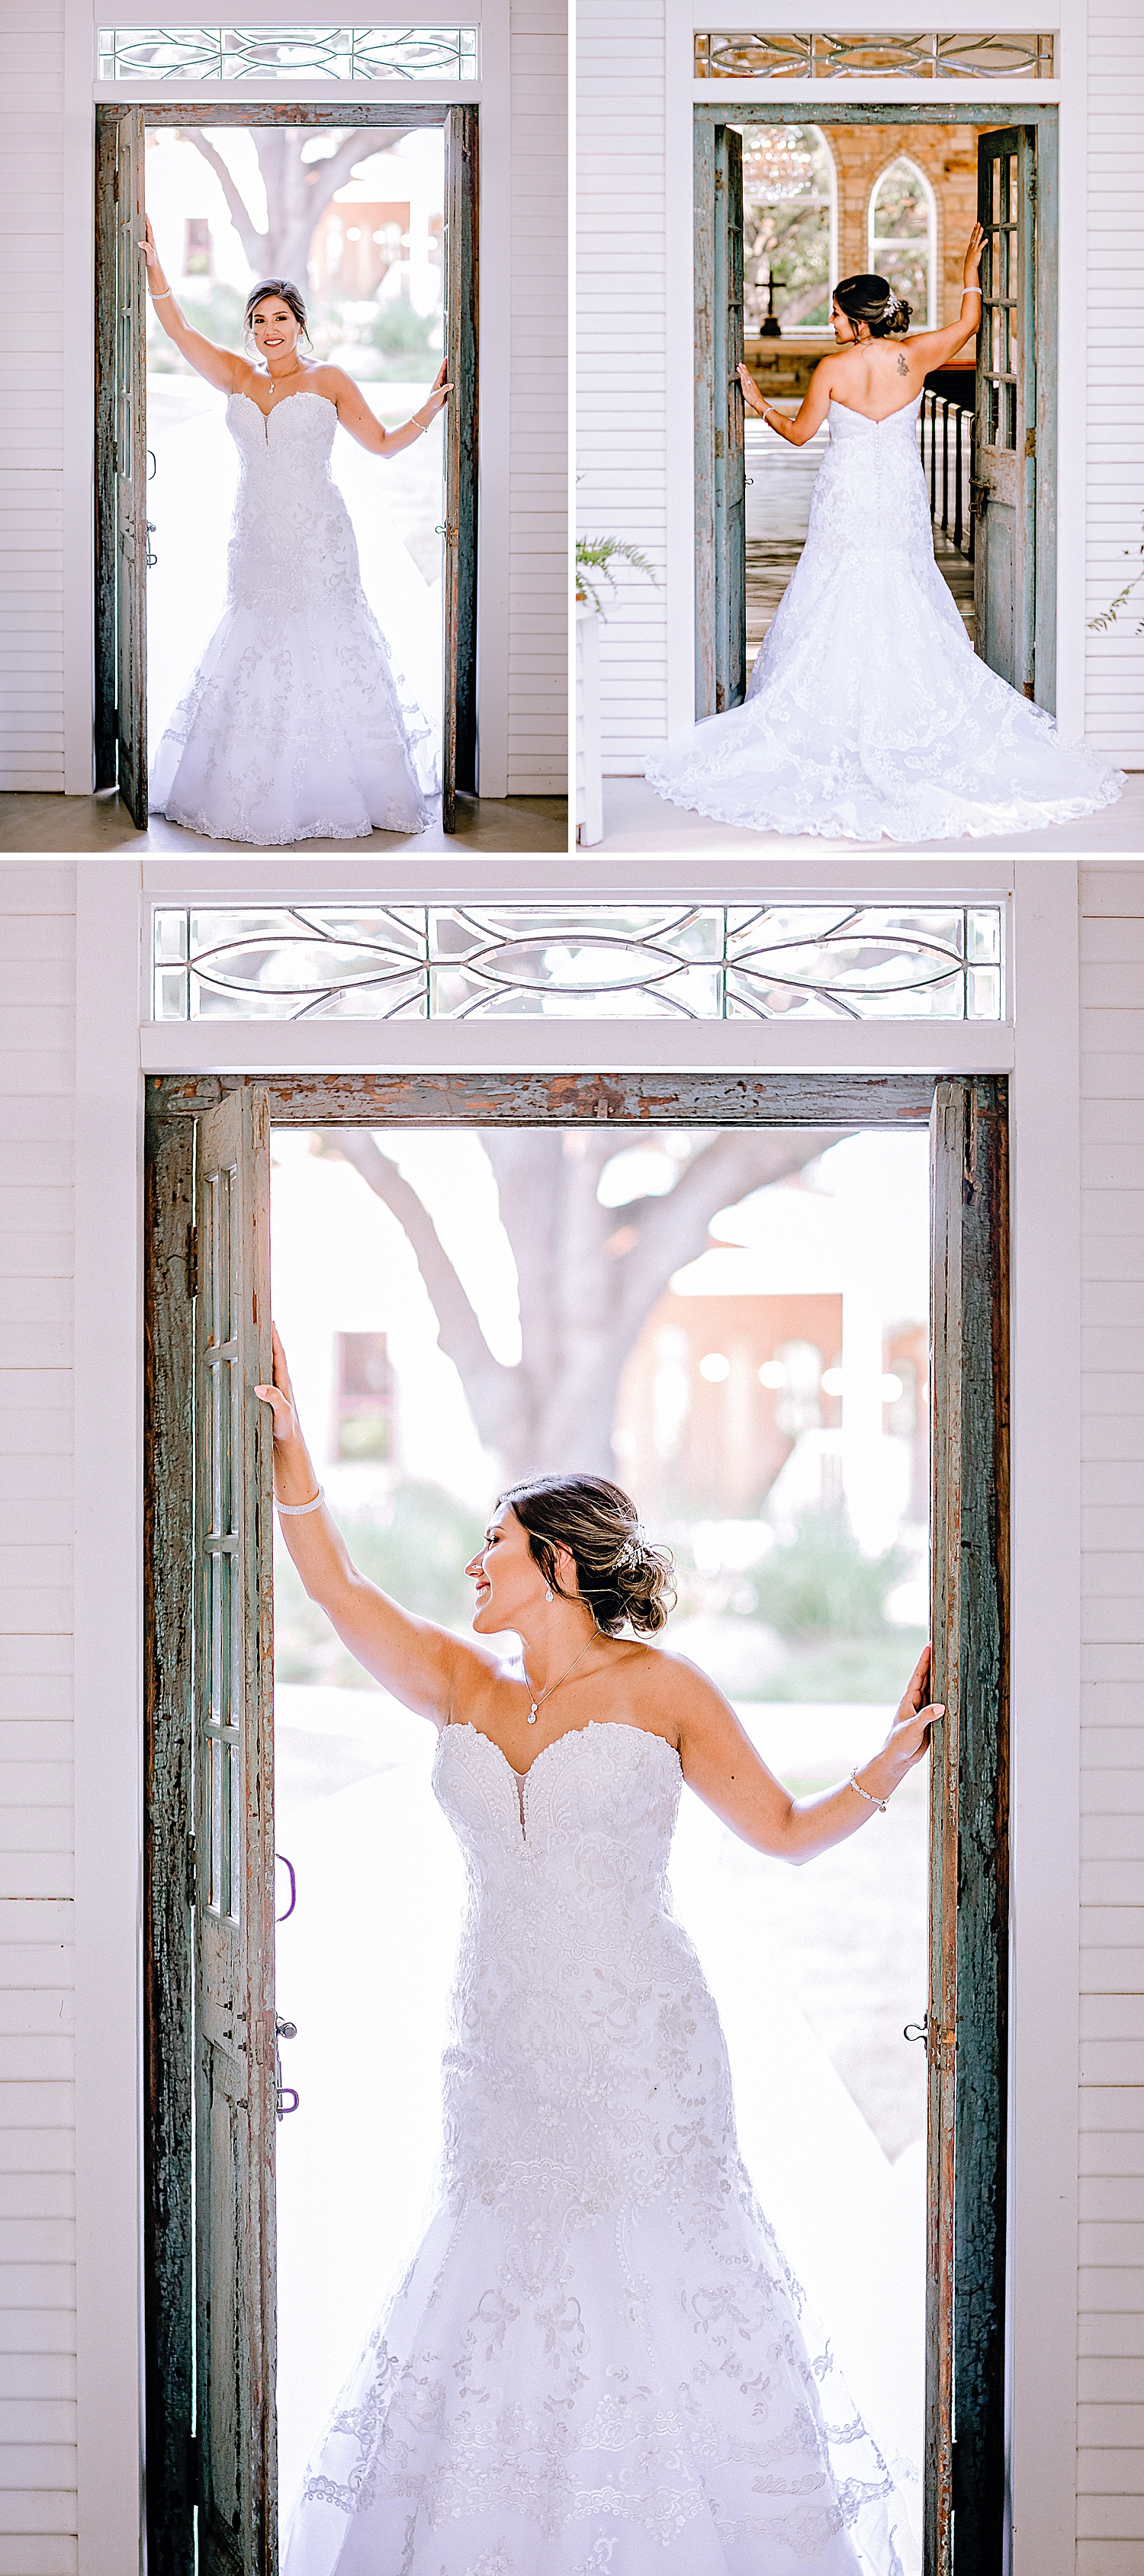 Carly-Barton-Photography-Bridal-Photos-Chadelier-of-Gruene-New-Braunfels-Wedding-Photographer_0007.jpg